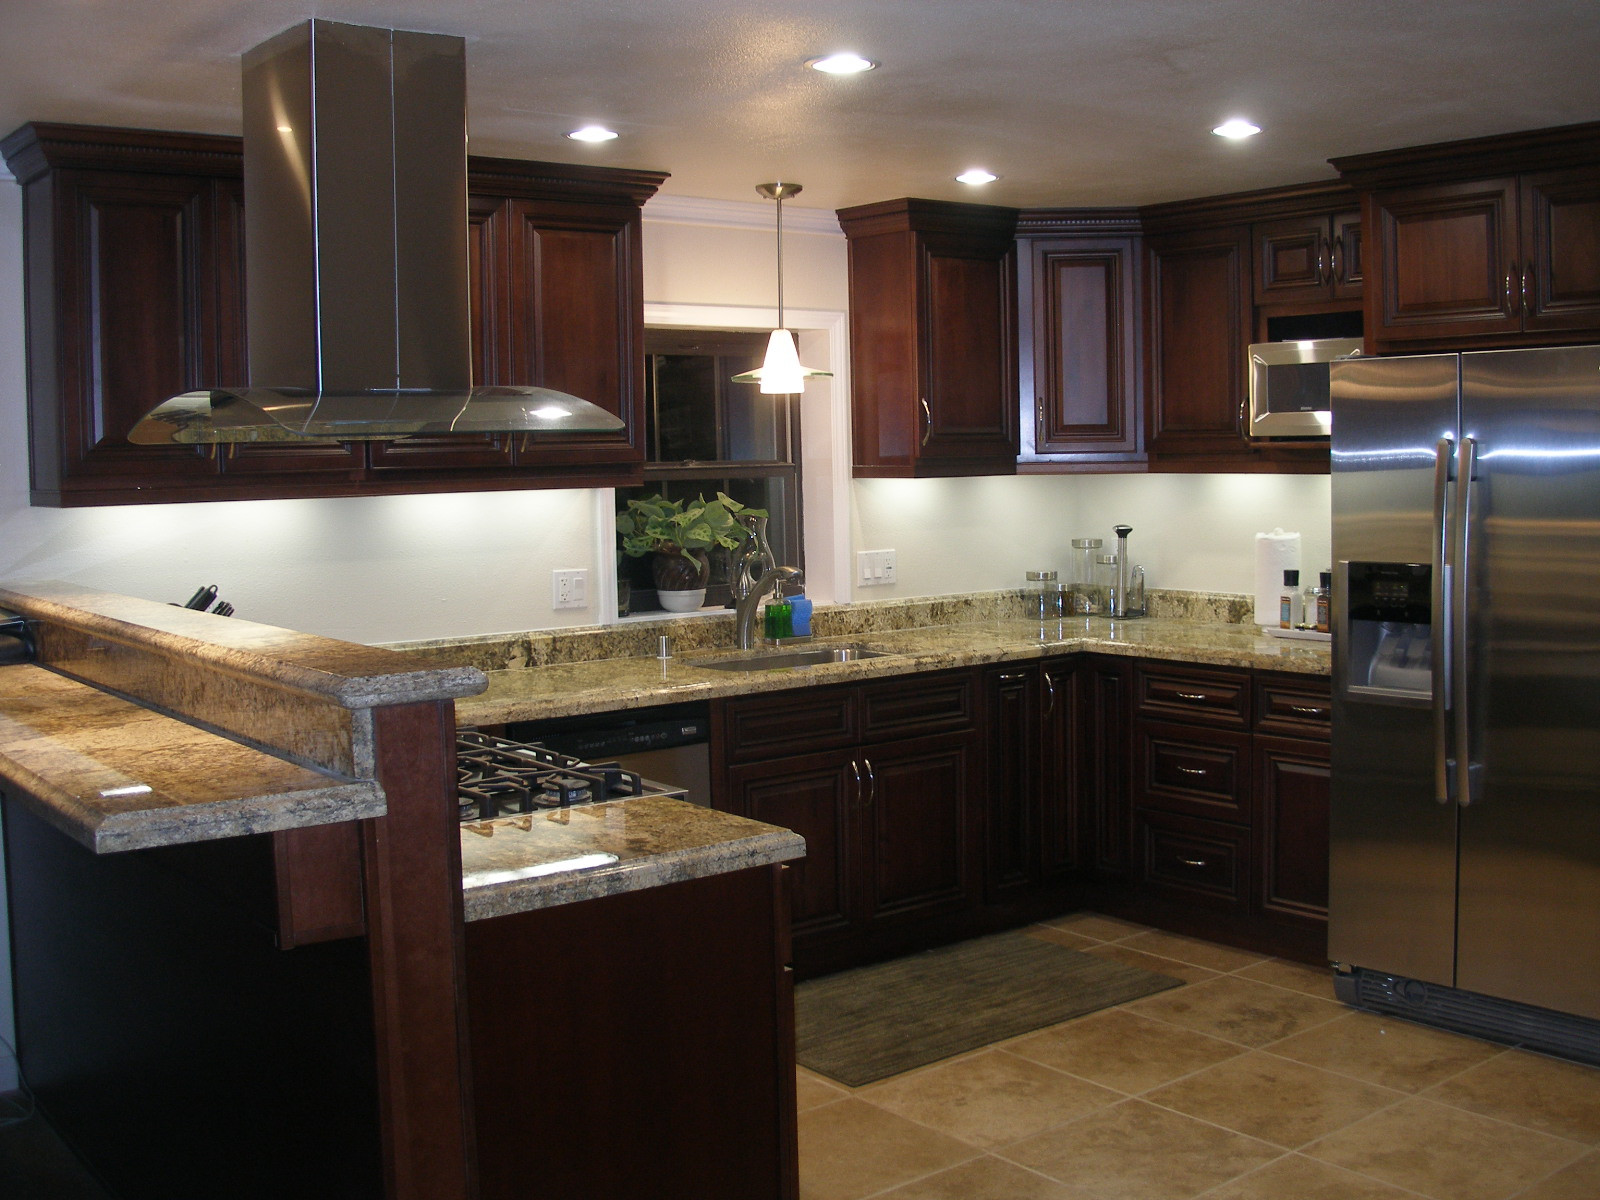 CALL FOR YOUR FREE KITCHEN REMODEL ESTIMATE TODAY! (800) 213 5288 Or (925)  718 1054